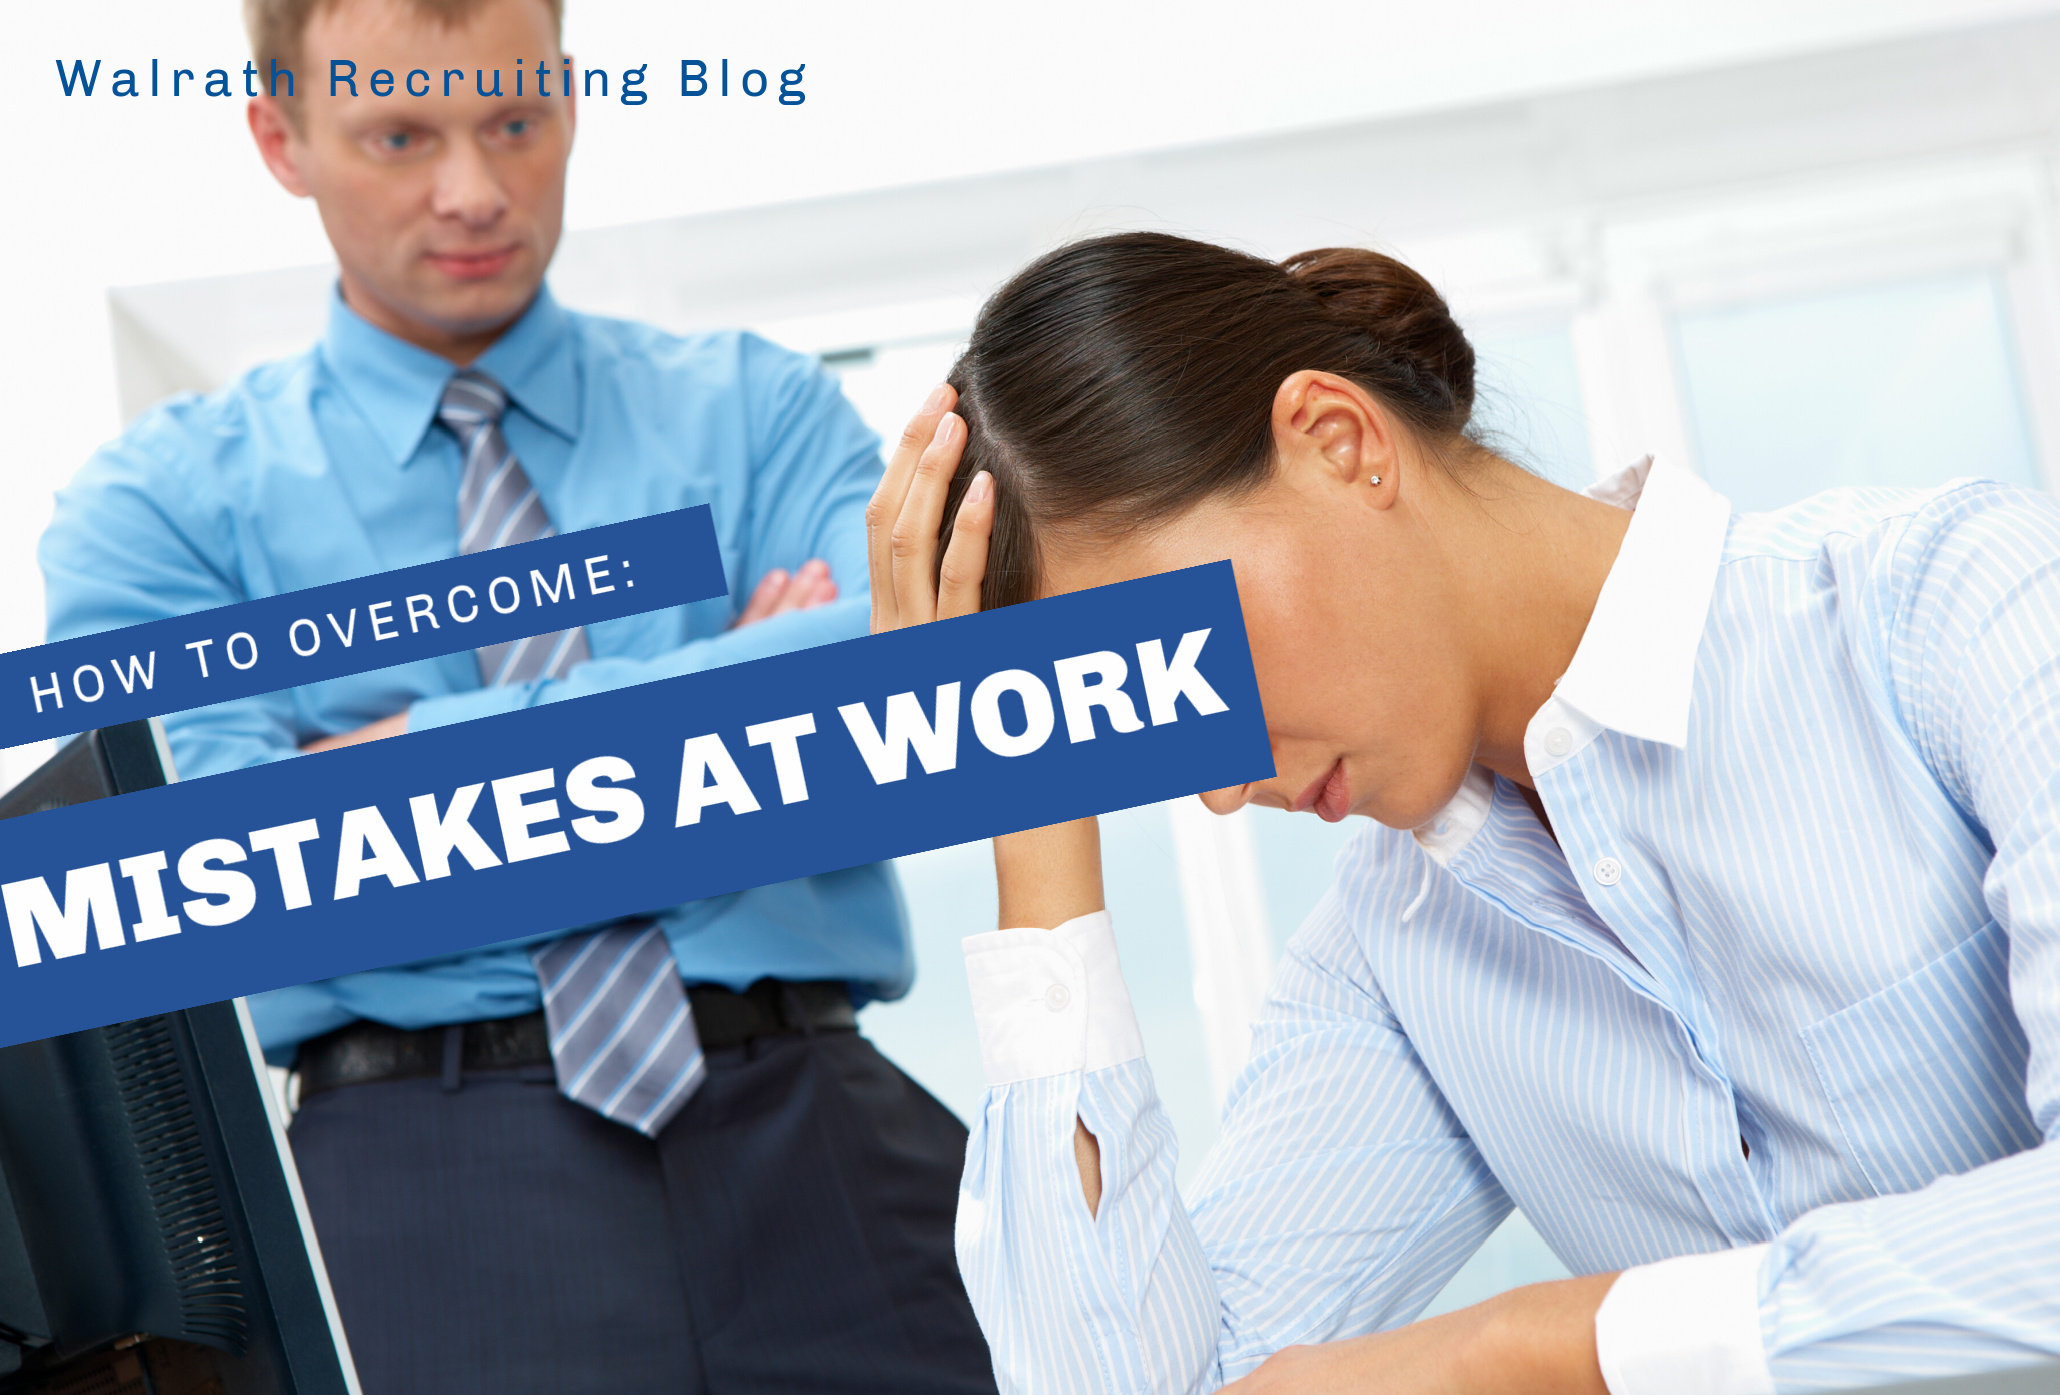 Mistakes at work may seem like the end of the world. But if handled properly they don't have to be!